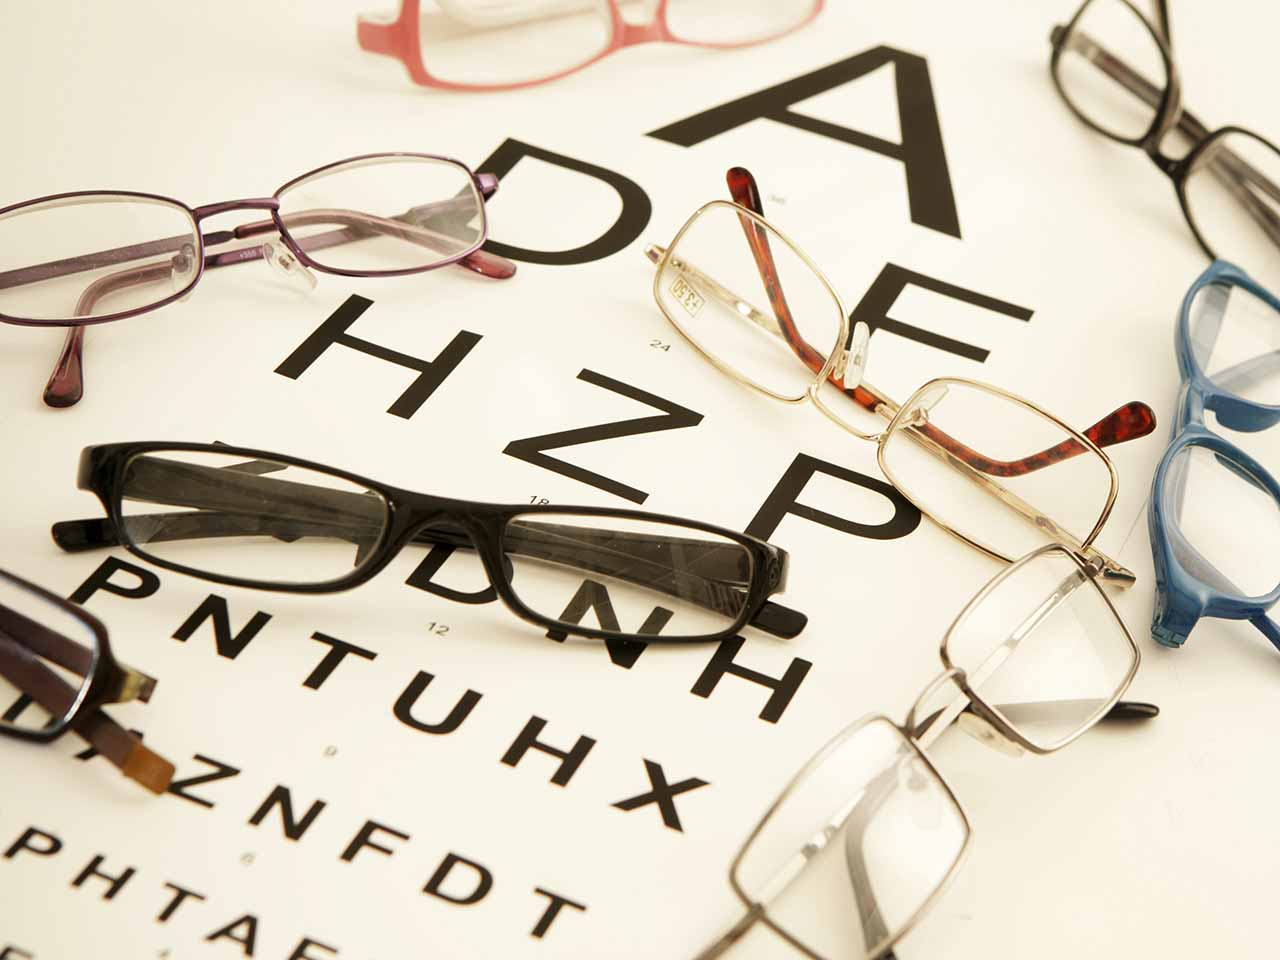 Pairs of glasses on an eye test chart